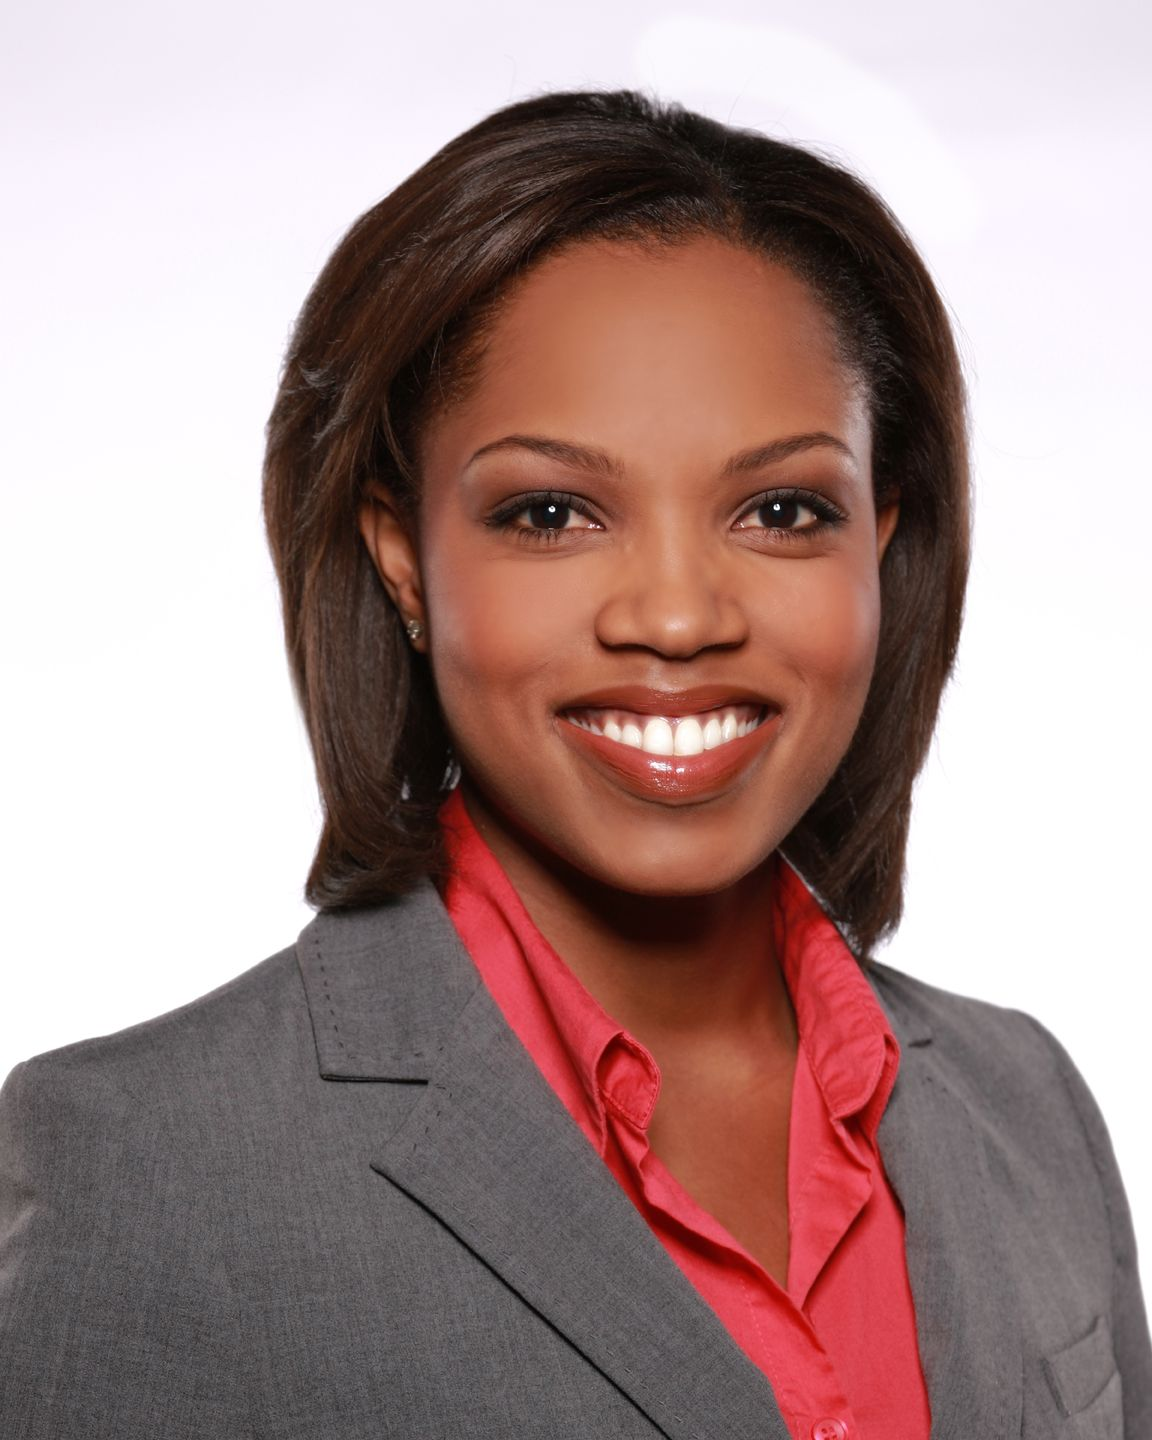 Wsb Tv Channel 2 Reporter Erica Byfield Tv Channel Channel 2 Personify